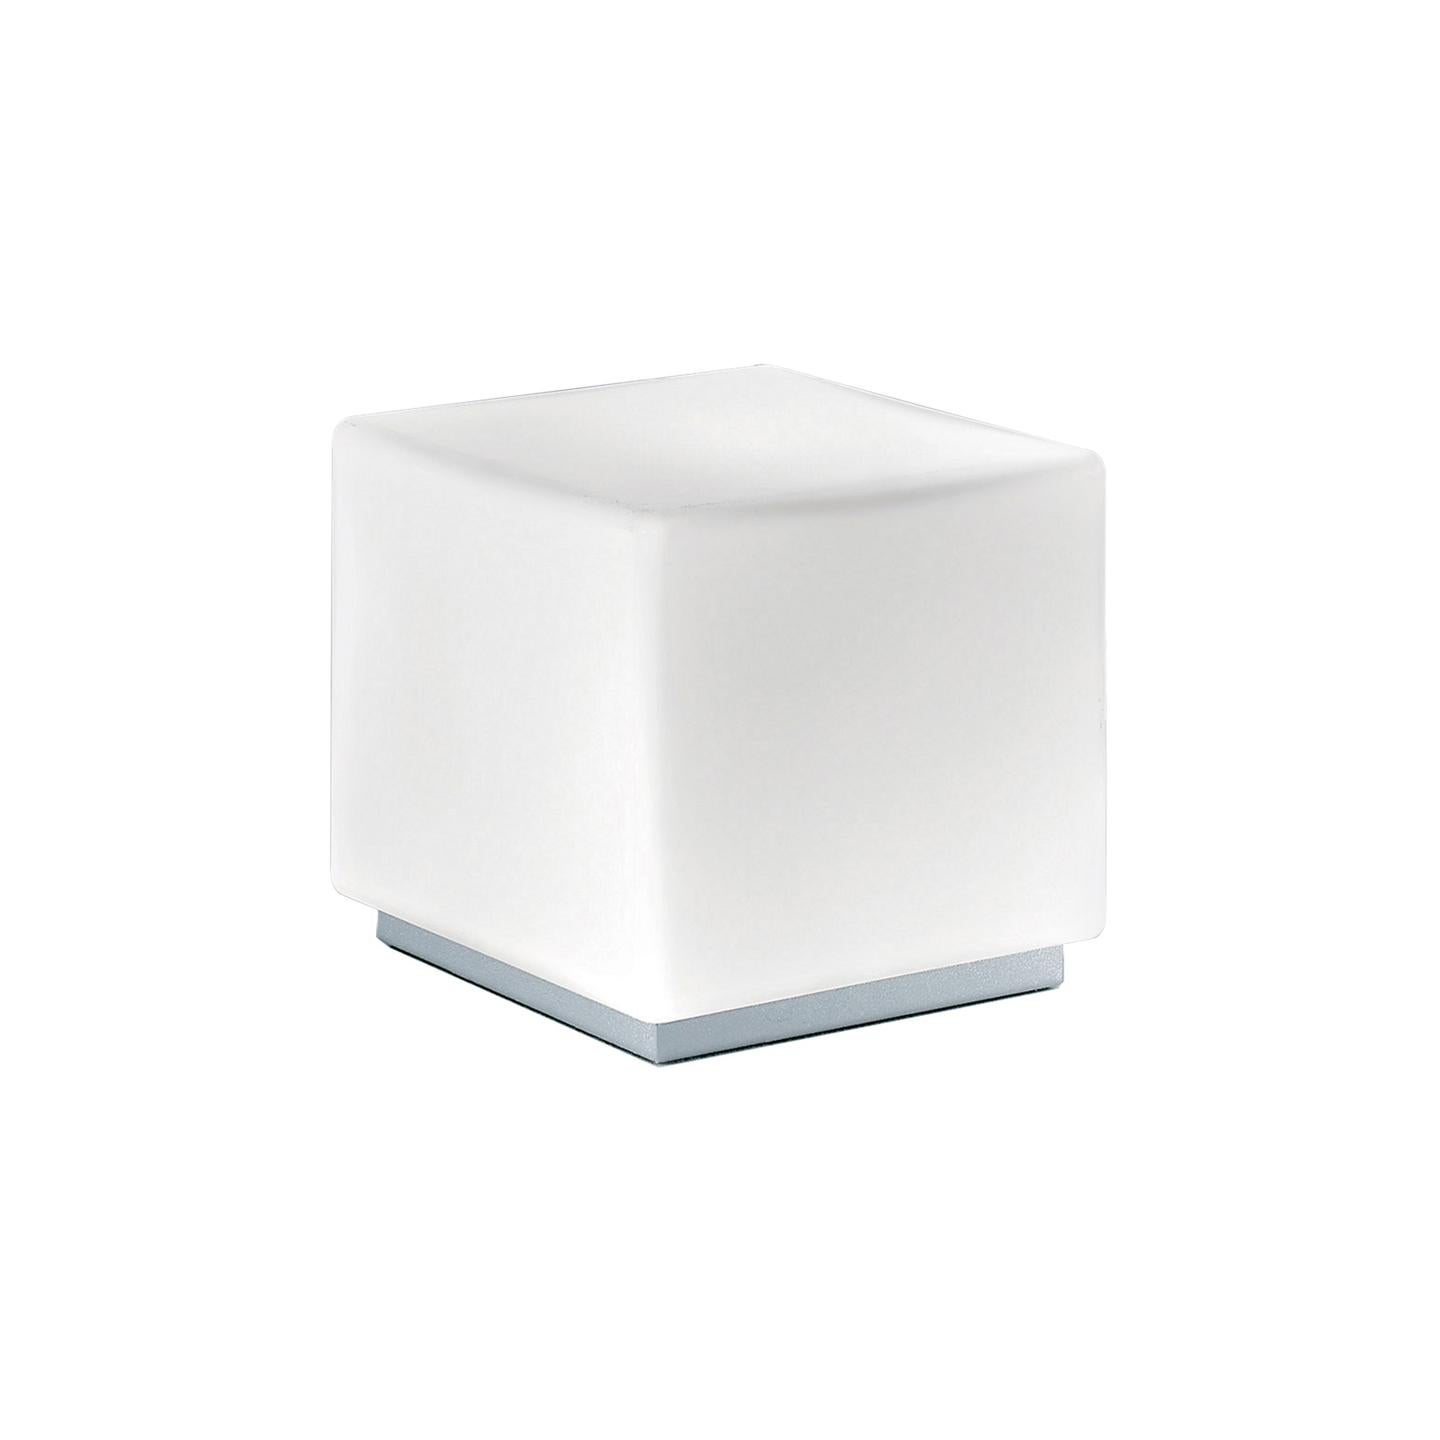 Leucos Cubi T 16 Table Light in Satin White and Gray by Design Lab